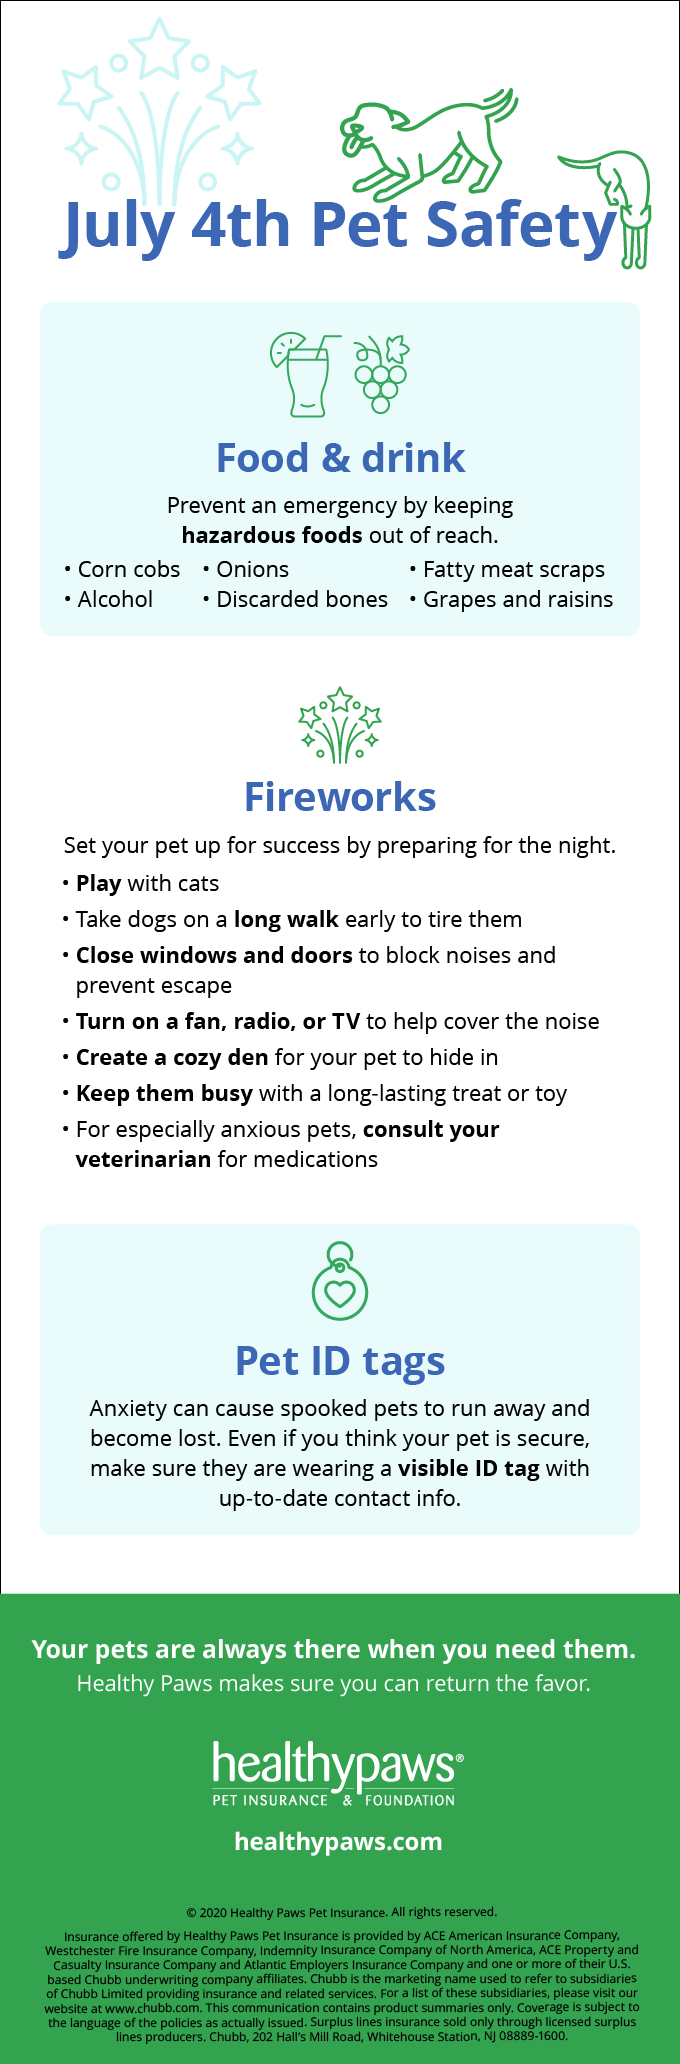 4th of July pet safety infographic